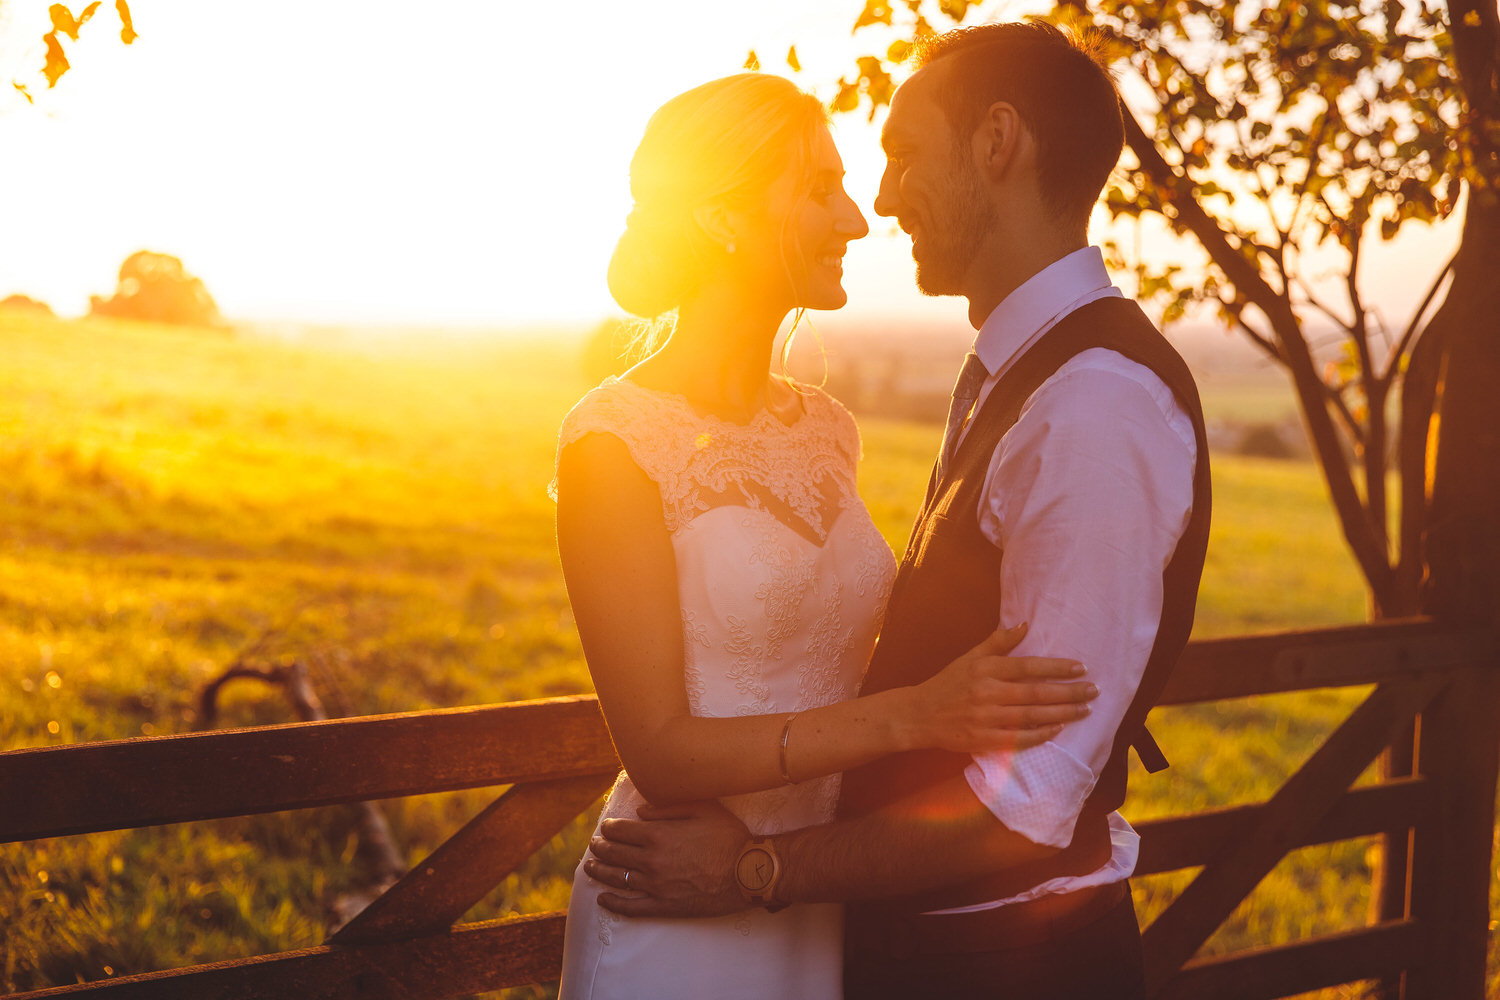 sunset during the wedding at coombe lodge in blagdon